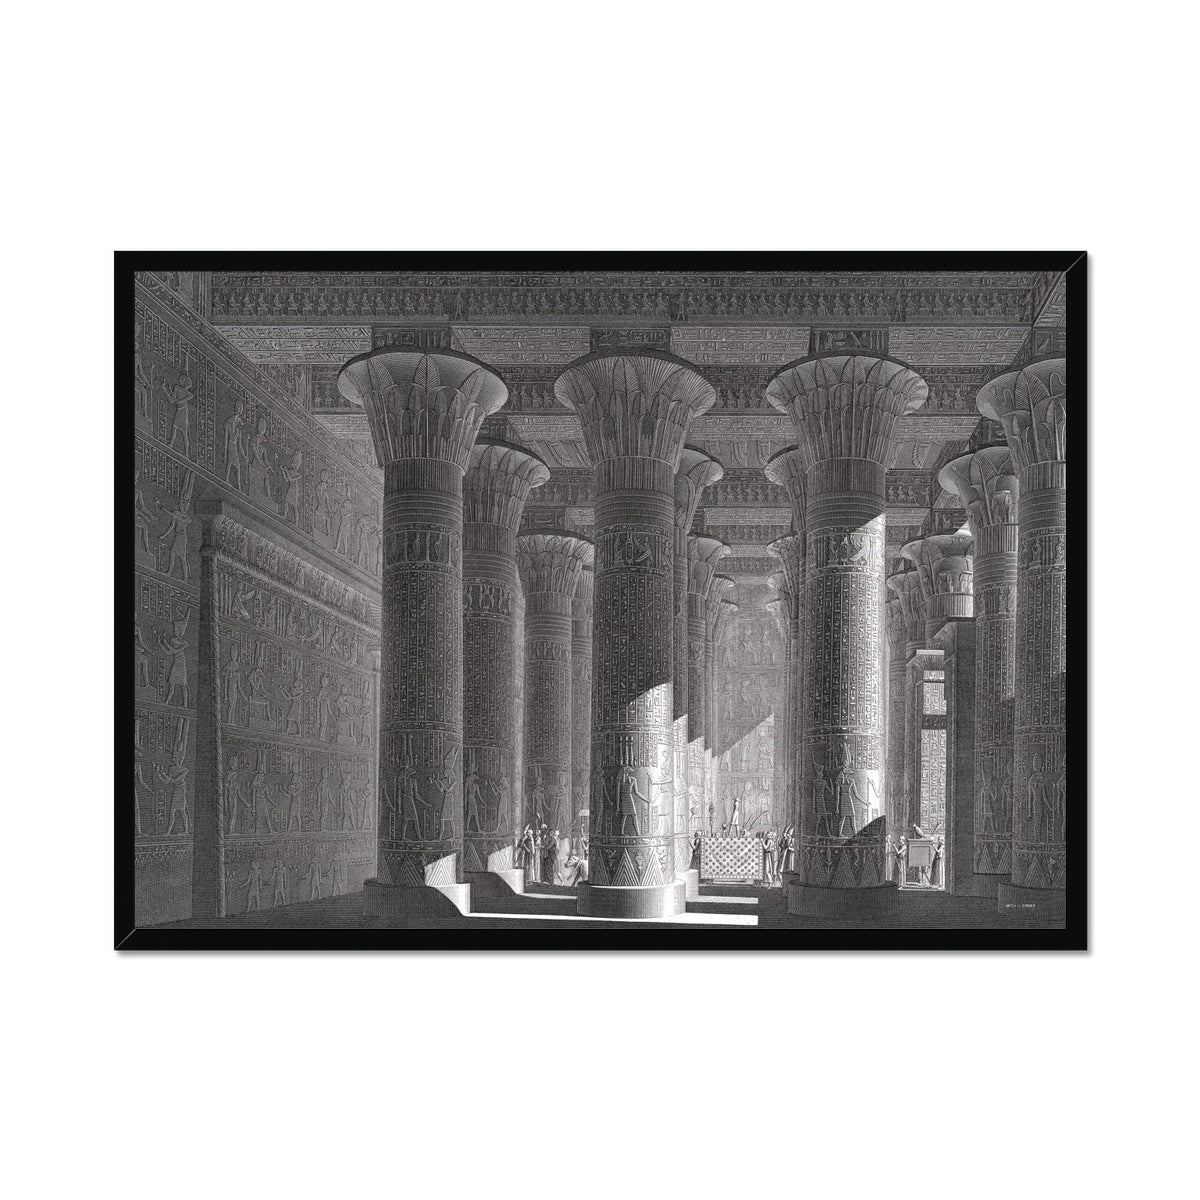 Temple of Khnum Portico Interior - Esna Egypt -  Framed Print